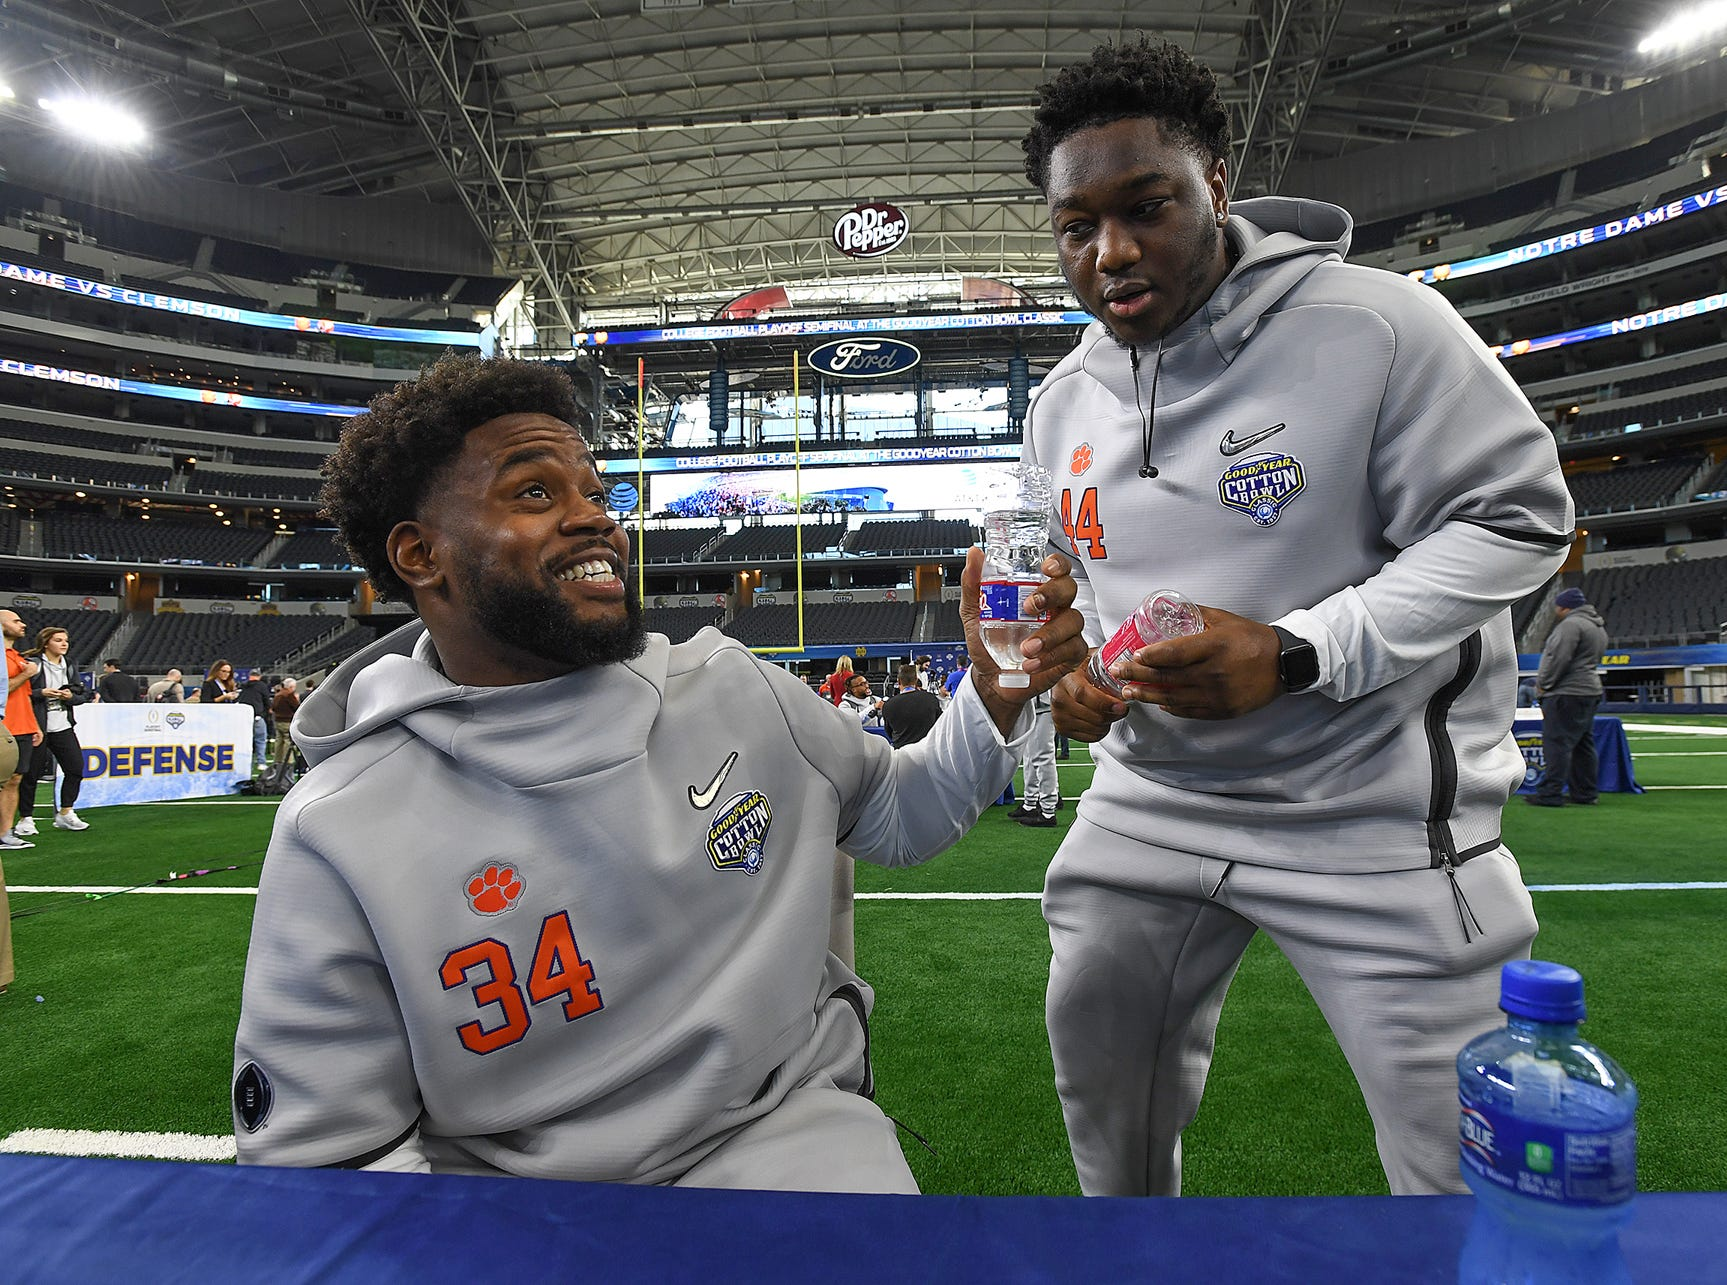 Clemson linebacker Kendall Joseph laughs with tight end Garrett Williams during the Tigers Cotton Bowl media day at AT&T Stadium in Arlington, TX Thursday, December 27, 2018.